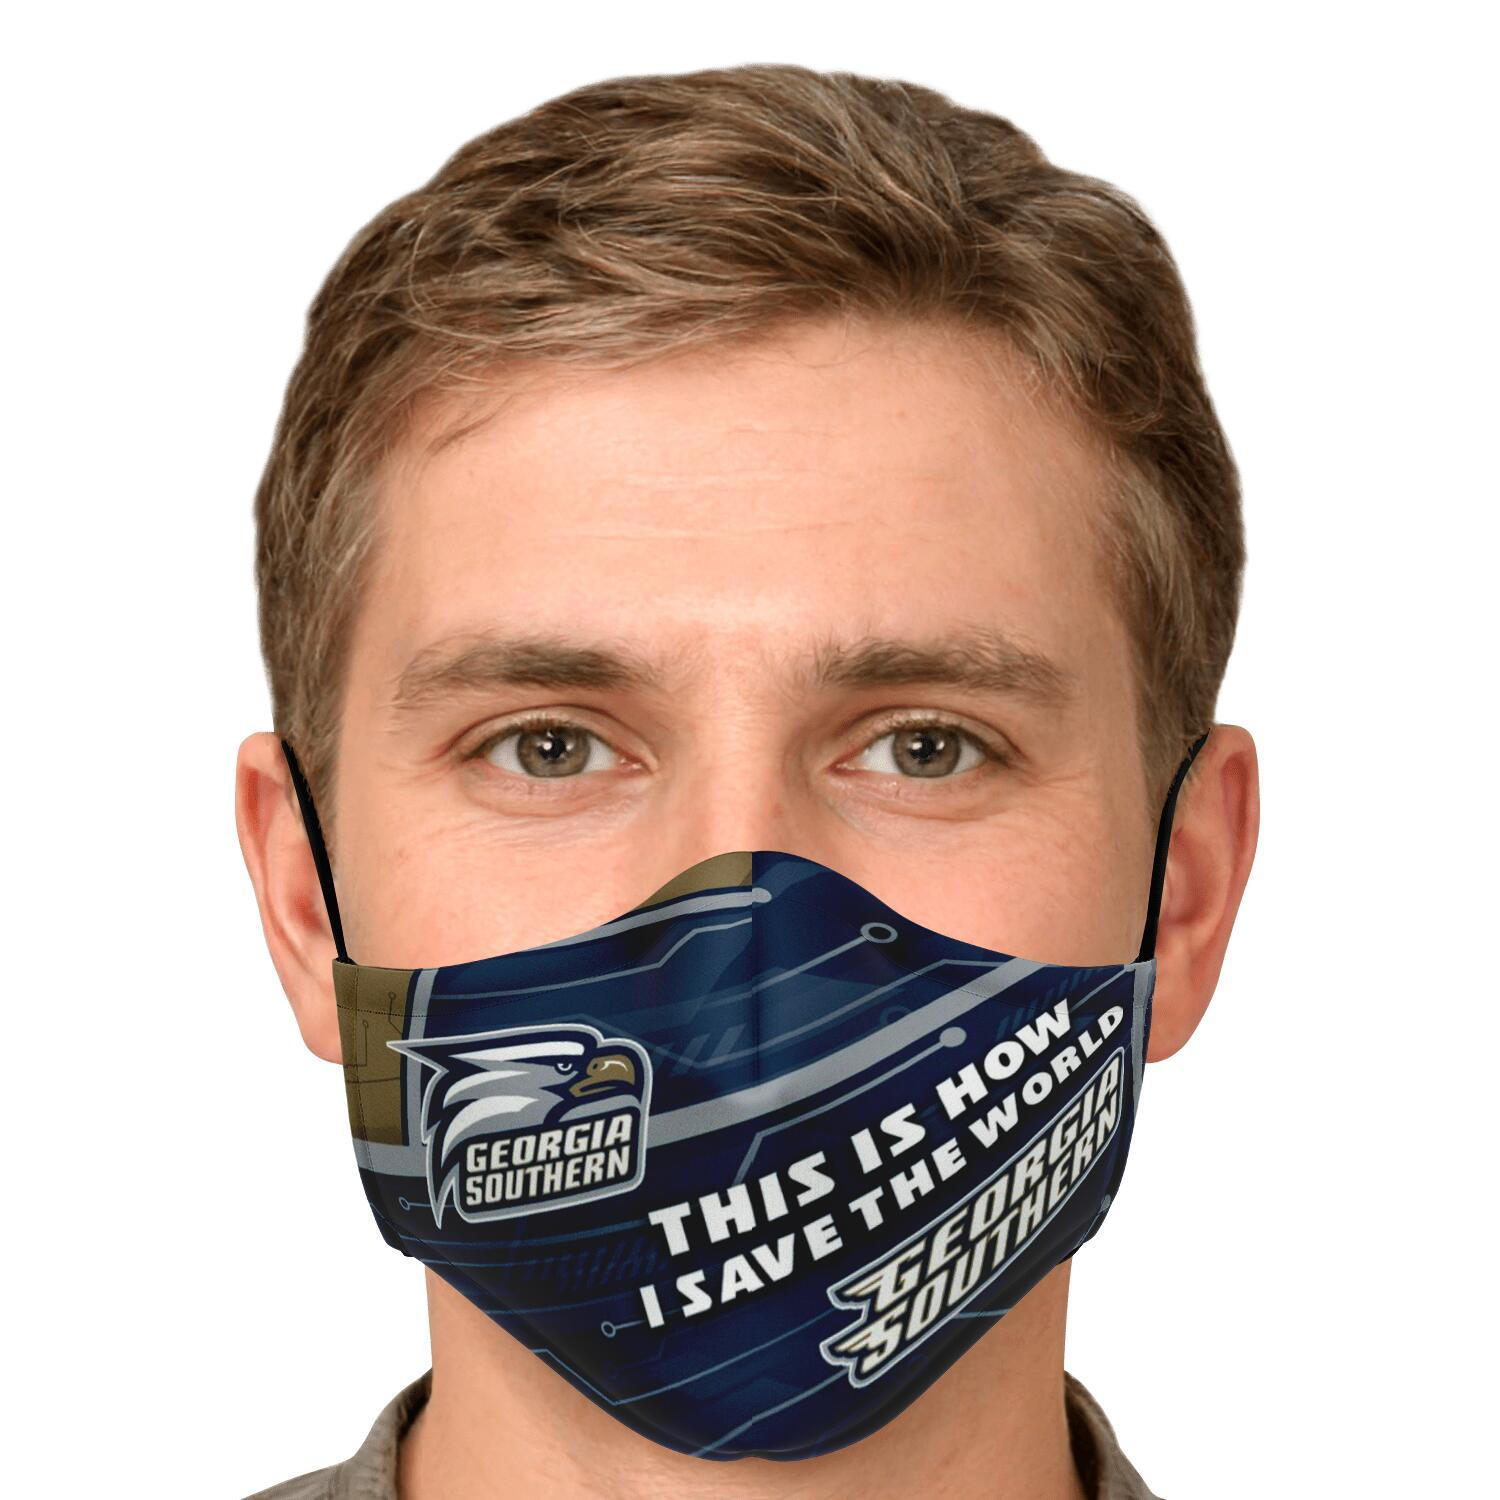 This Is How I Save The World Georgia Southern Eagles Face Masks 4